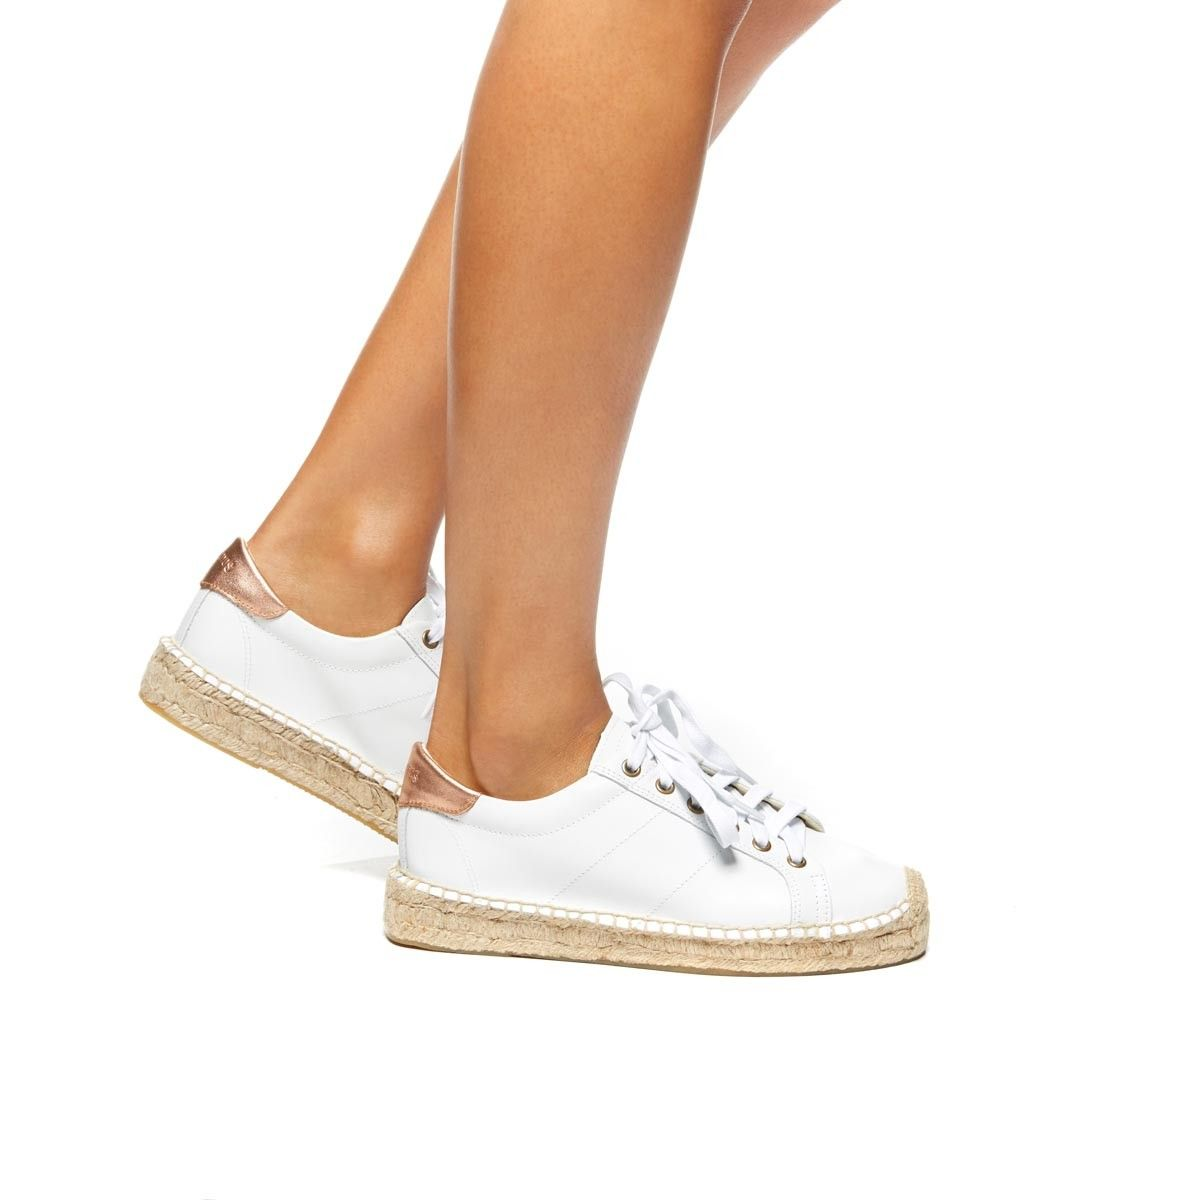 white leather espadrille sneakers